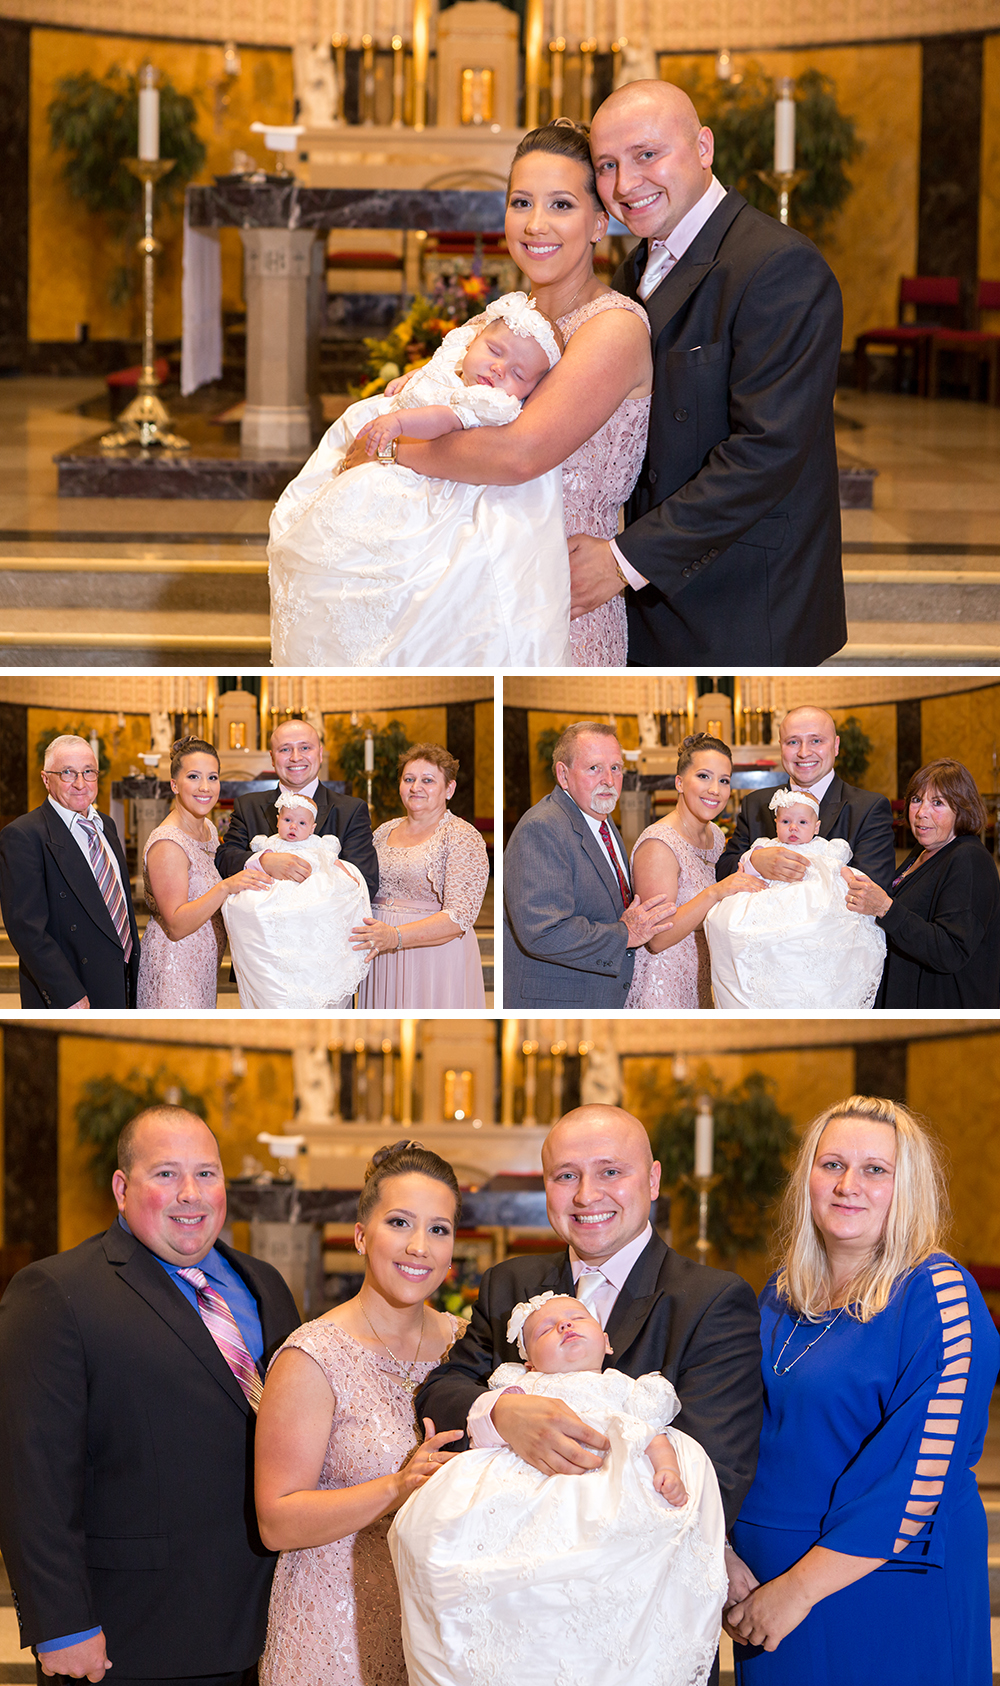 Formal Family Photos in Church after Baptism